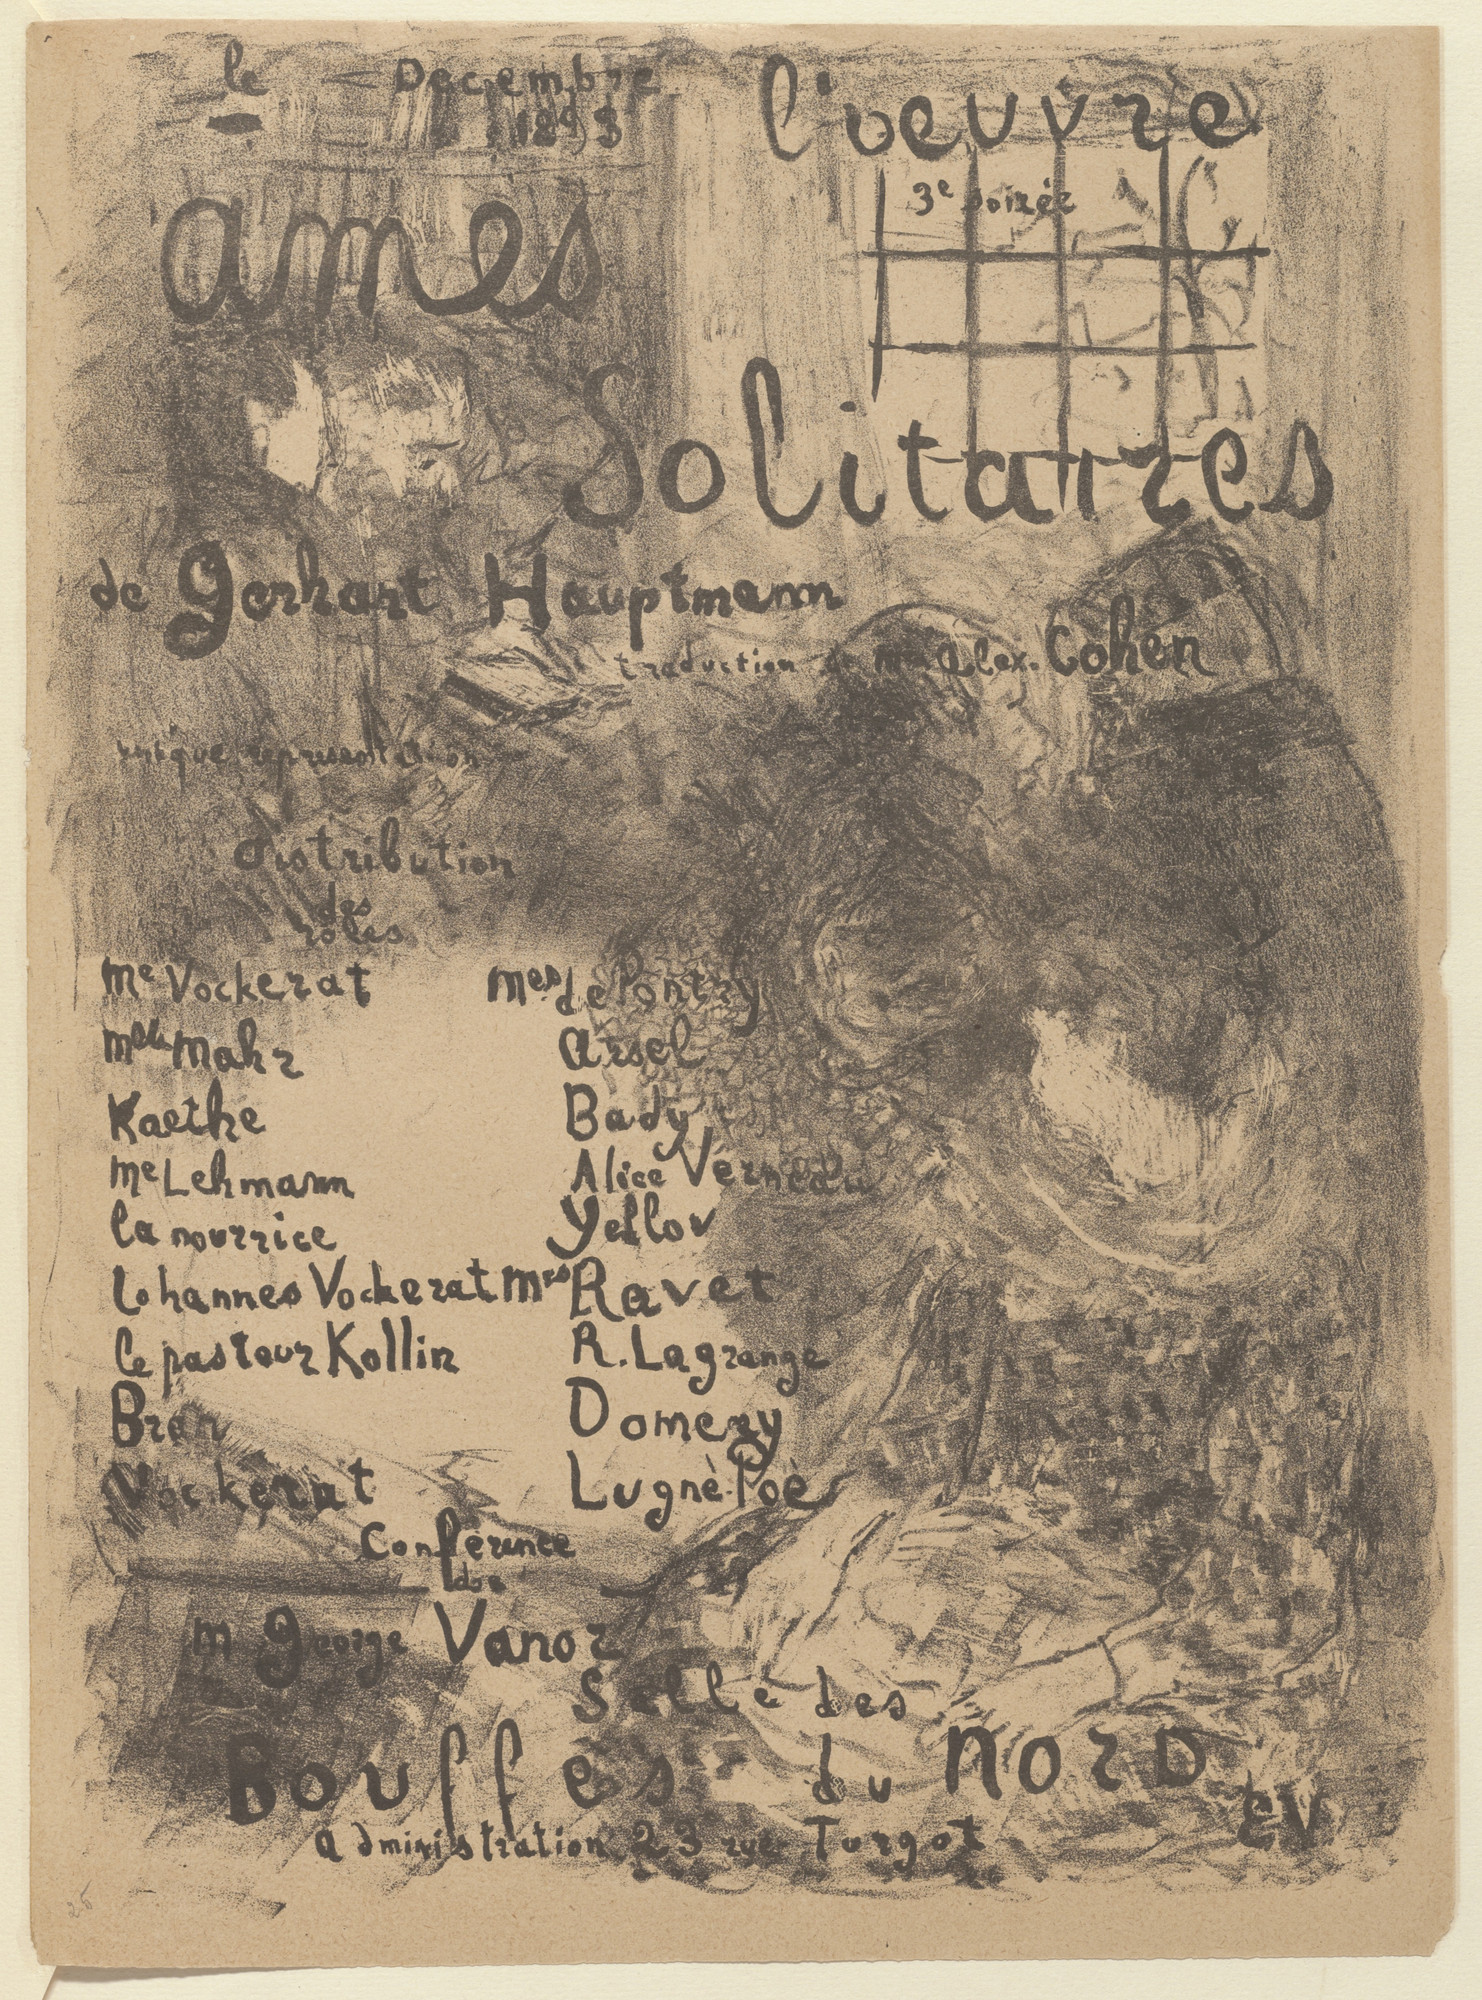 Édouard Vuillard. Program for Lonely Soles (Âmes solitaires) from The Beraldi Album of Theatre Programs. 1893